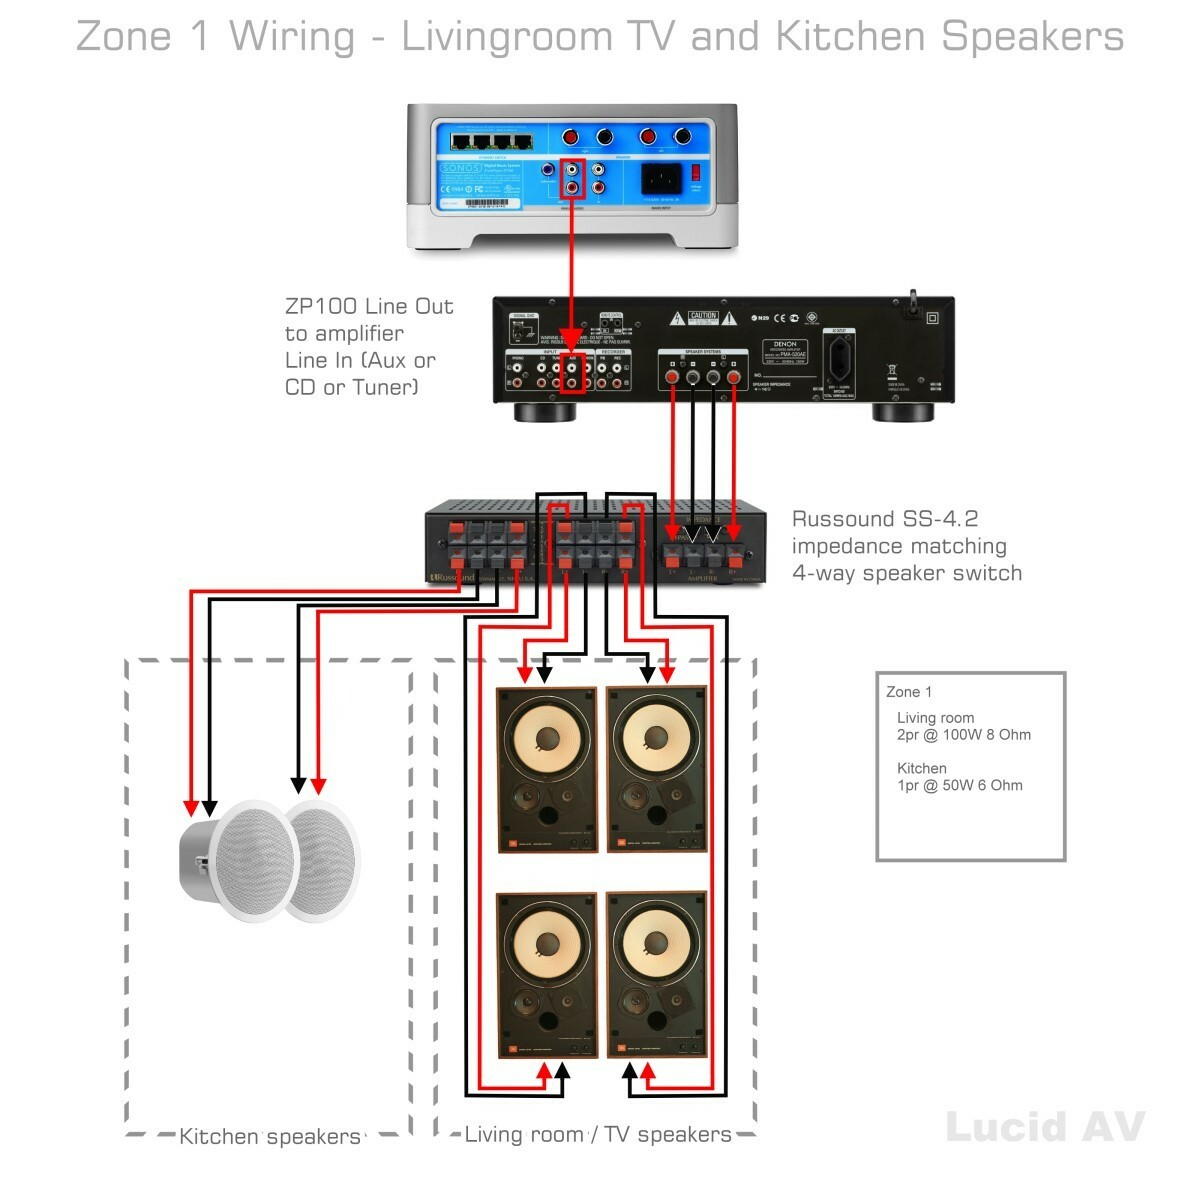 here's a solution for wiring up your zone 1 (living room tv + kitchen)